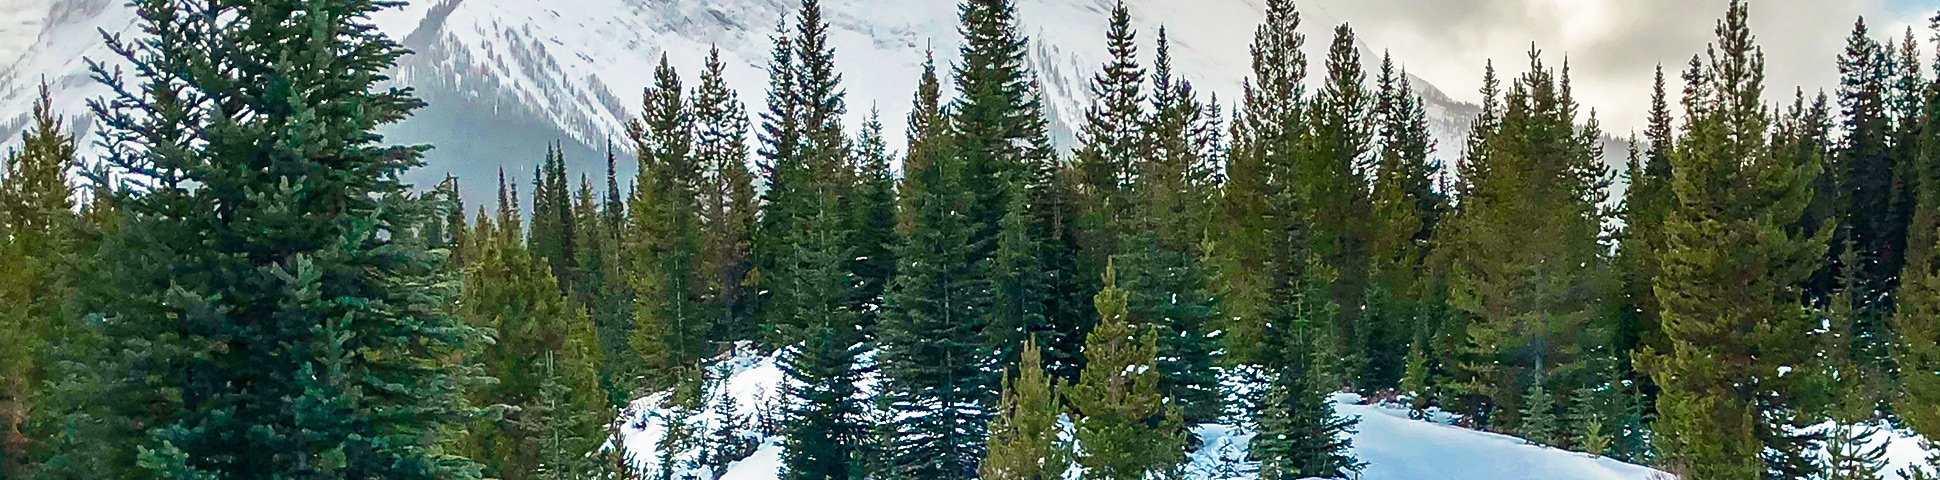 Panoramic view of Mt Shark XC ski trail near Kananaskis and Canmore in the Canadian Rockies